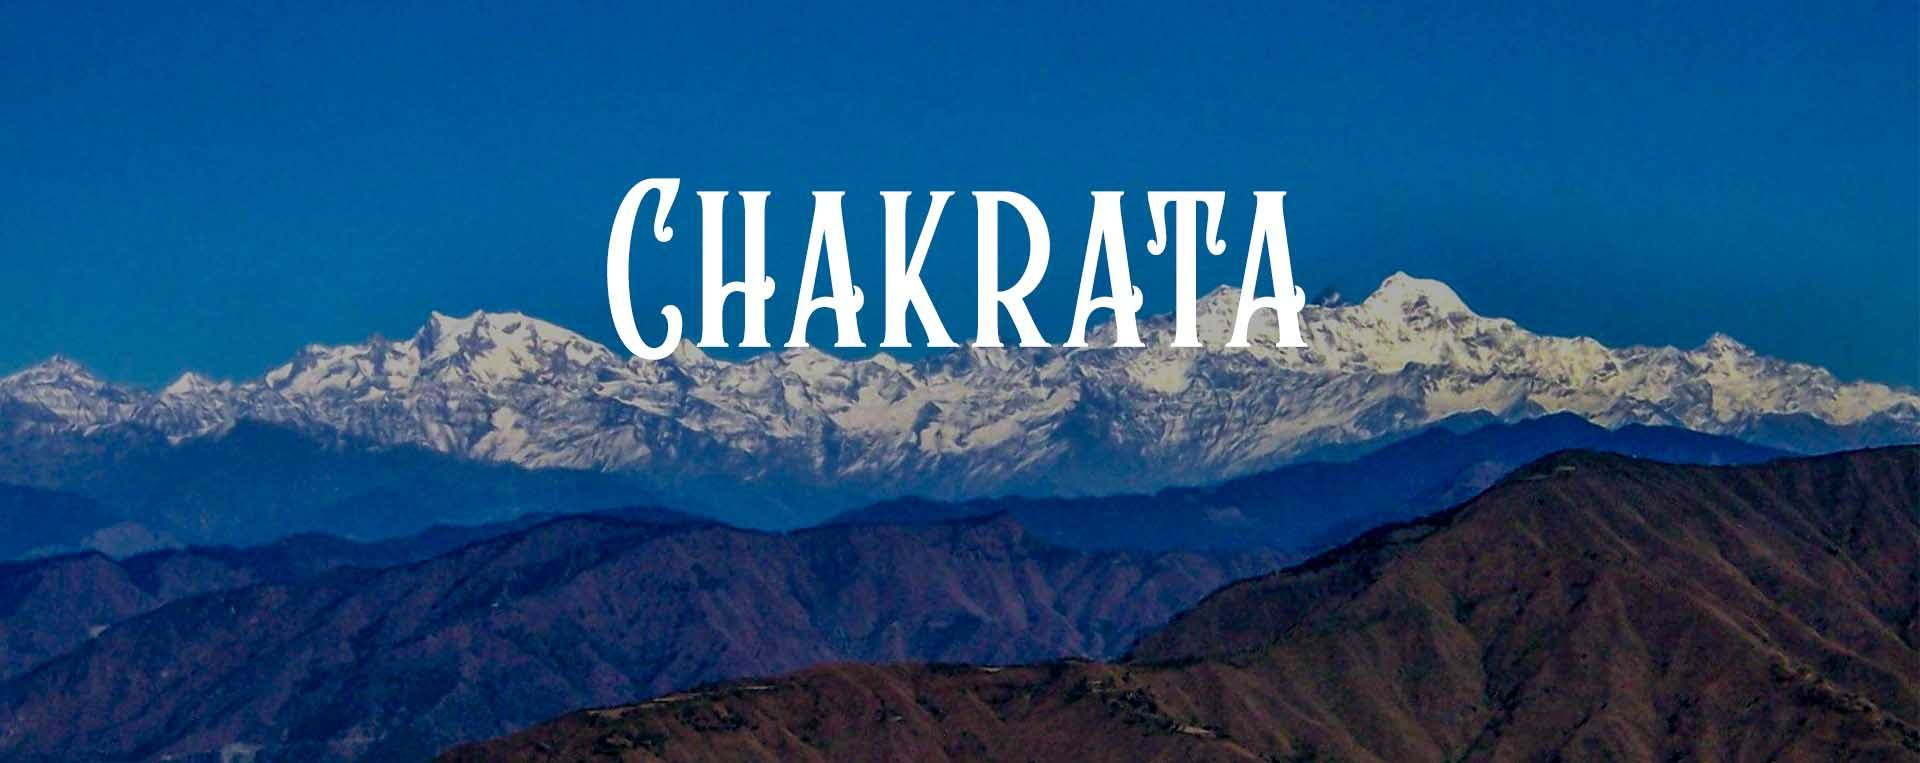 Best Accommodation Hotels in Chakrata  Uttarakhand Hotels Resorts Deals Price Online with Earth Trip. BOOK Chakrata  hotels and Resorts online with lowest rates & discounts. List of hotels and resorts in Chakrata  with best deals, offers. Chakrata  Cheap budget hotels, luxury deluxe hotels